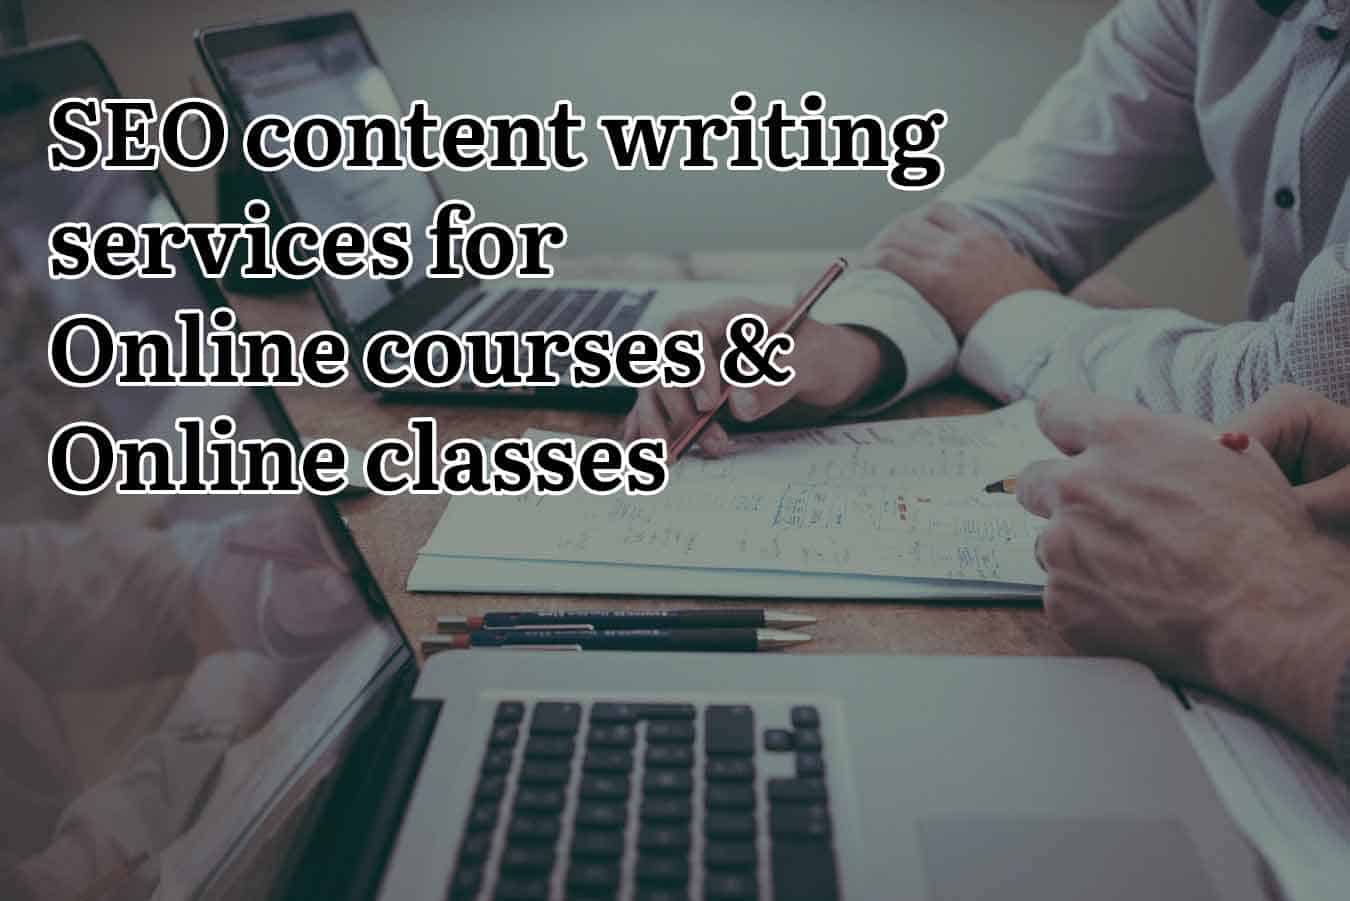 SEO content writing services for online courses and classes